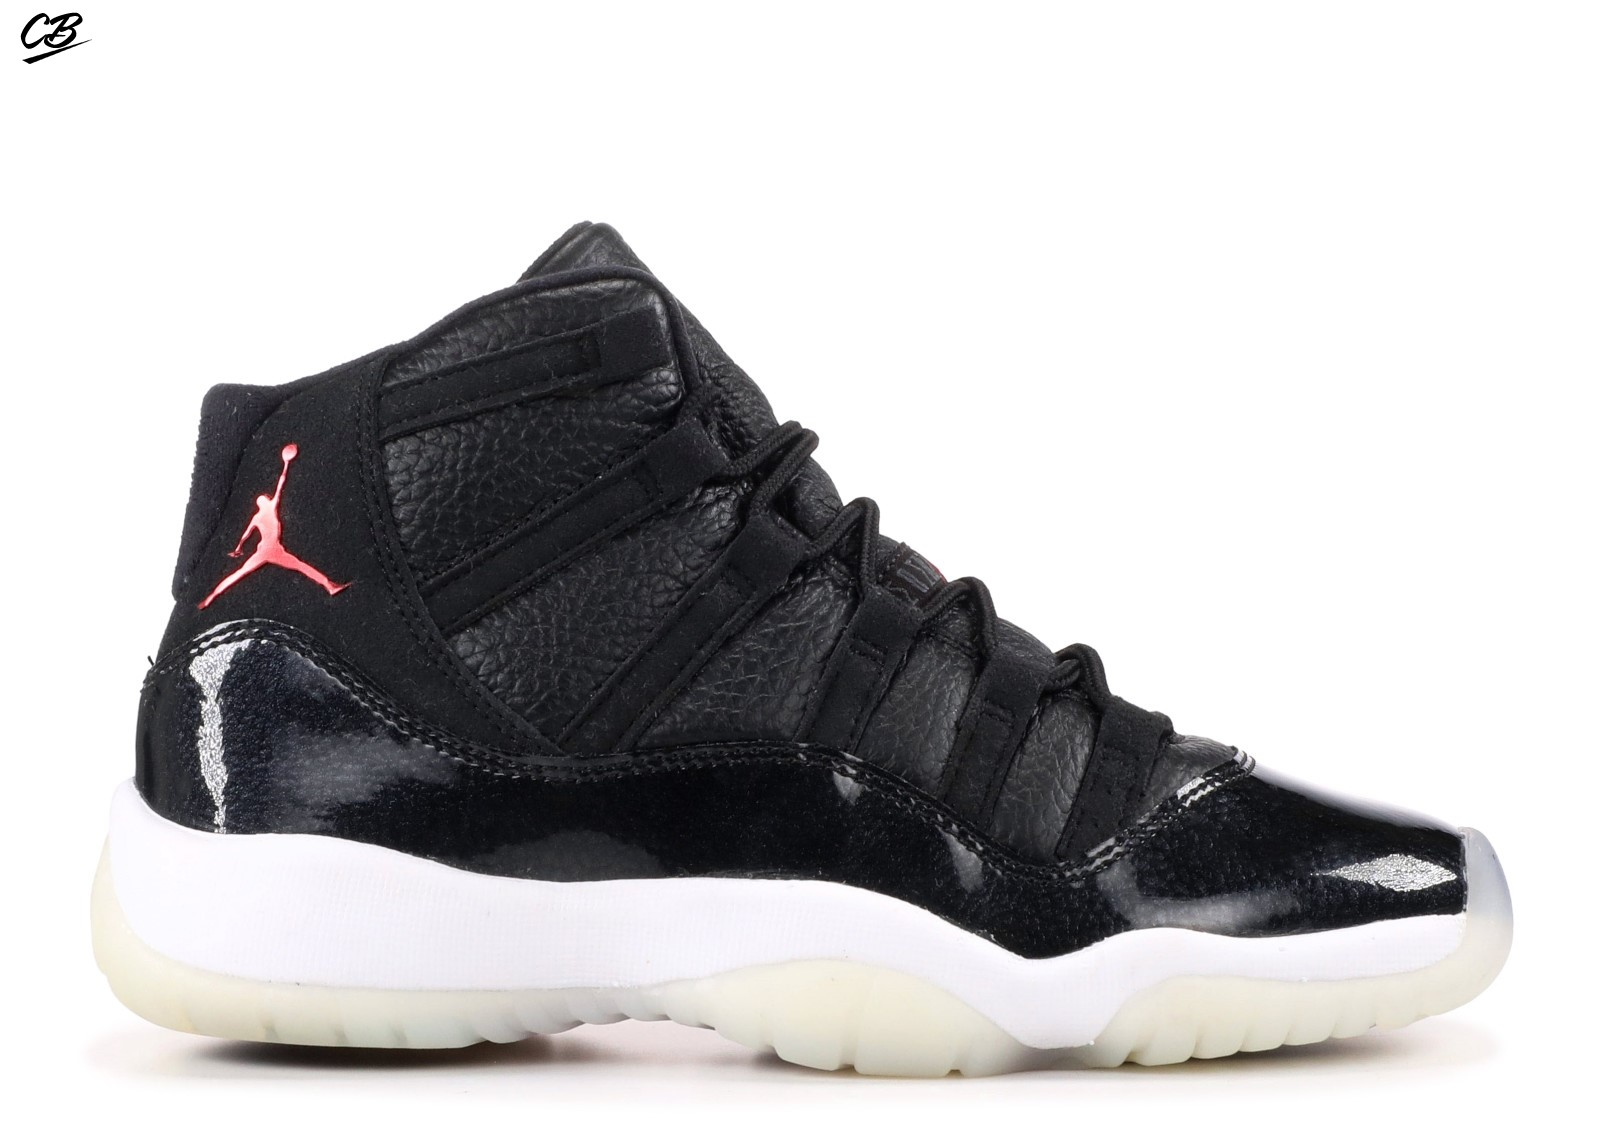 Air Jordan 11 Retro Bg (Gs) 72 10 Noir Blanc (378038-002 ...